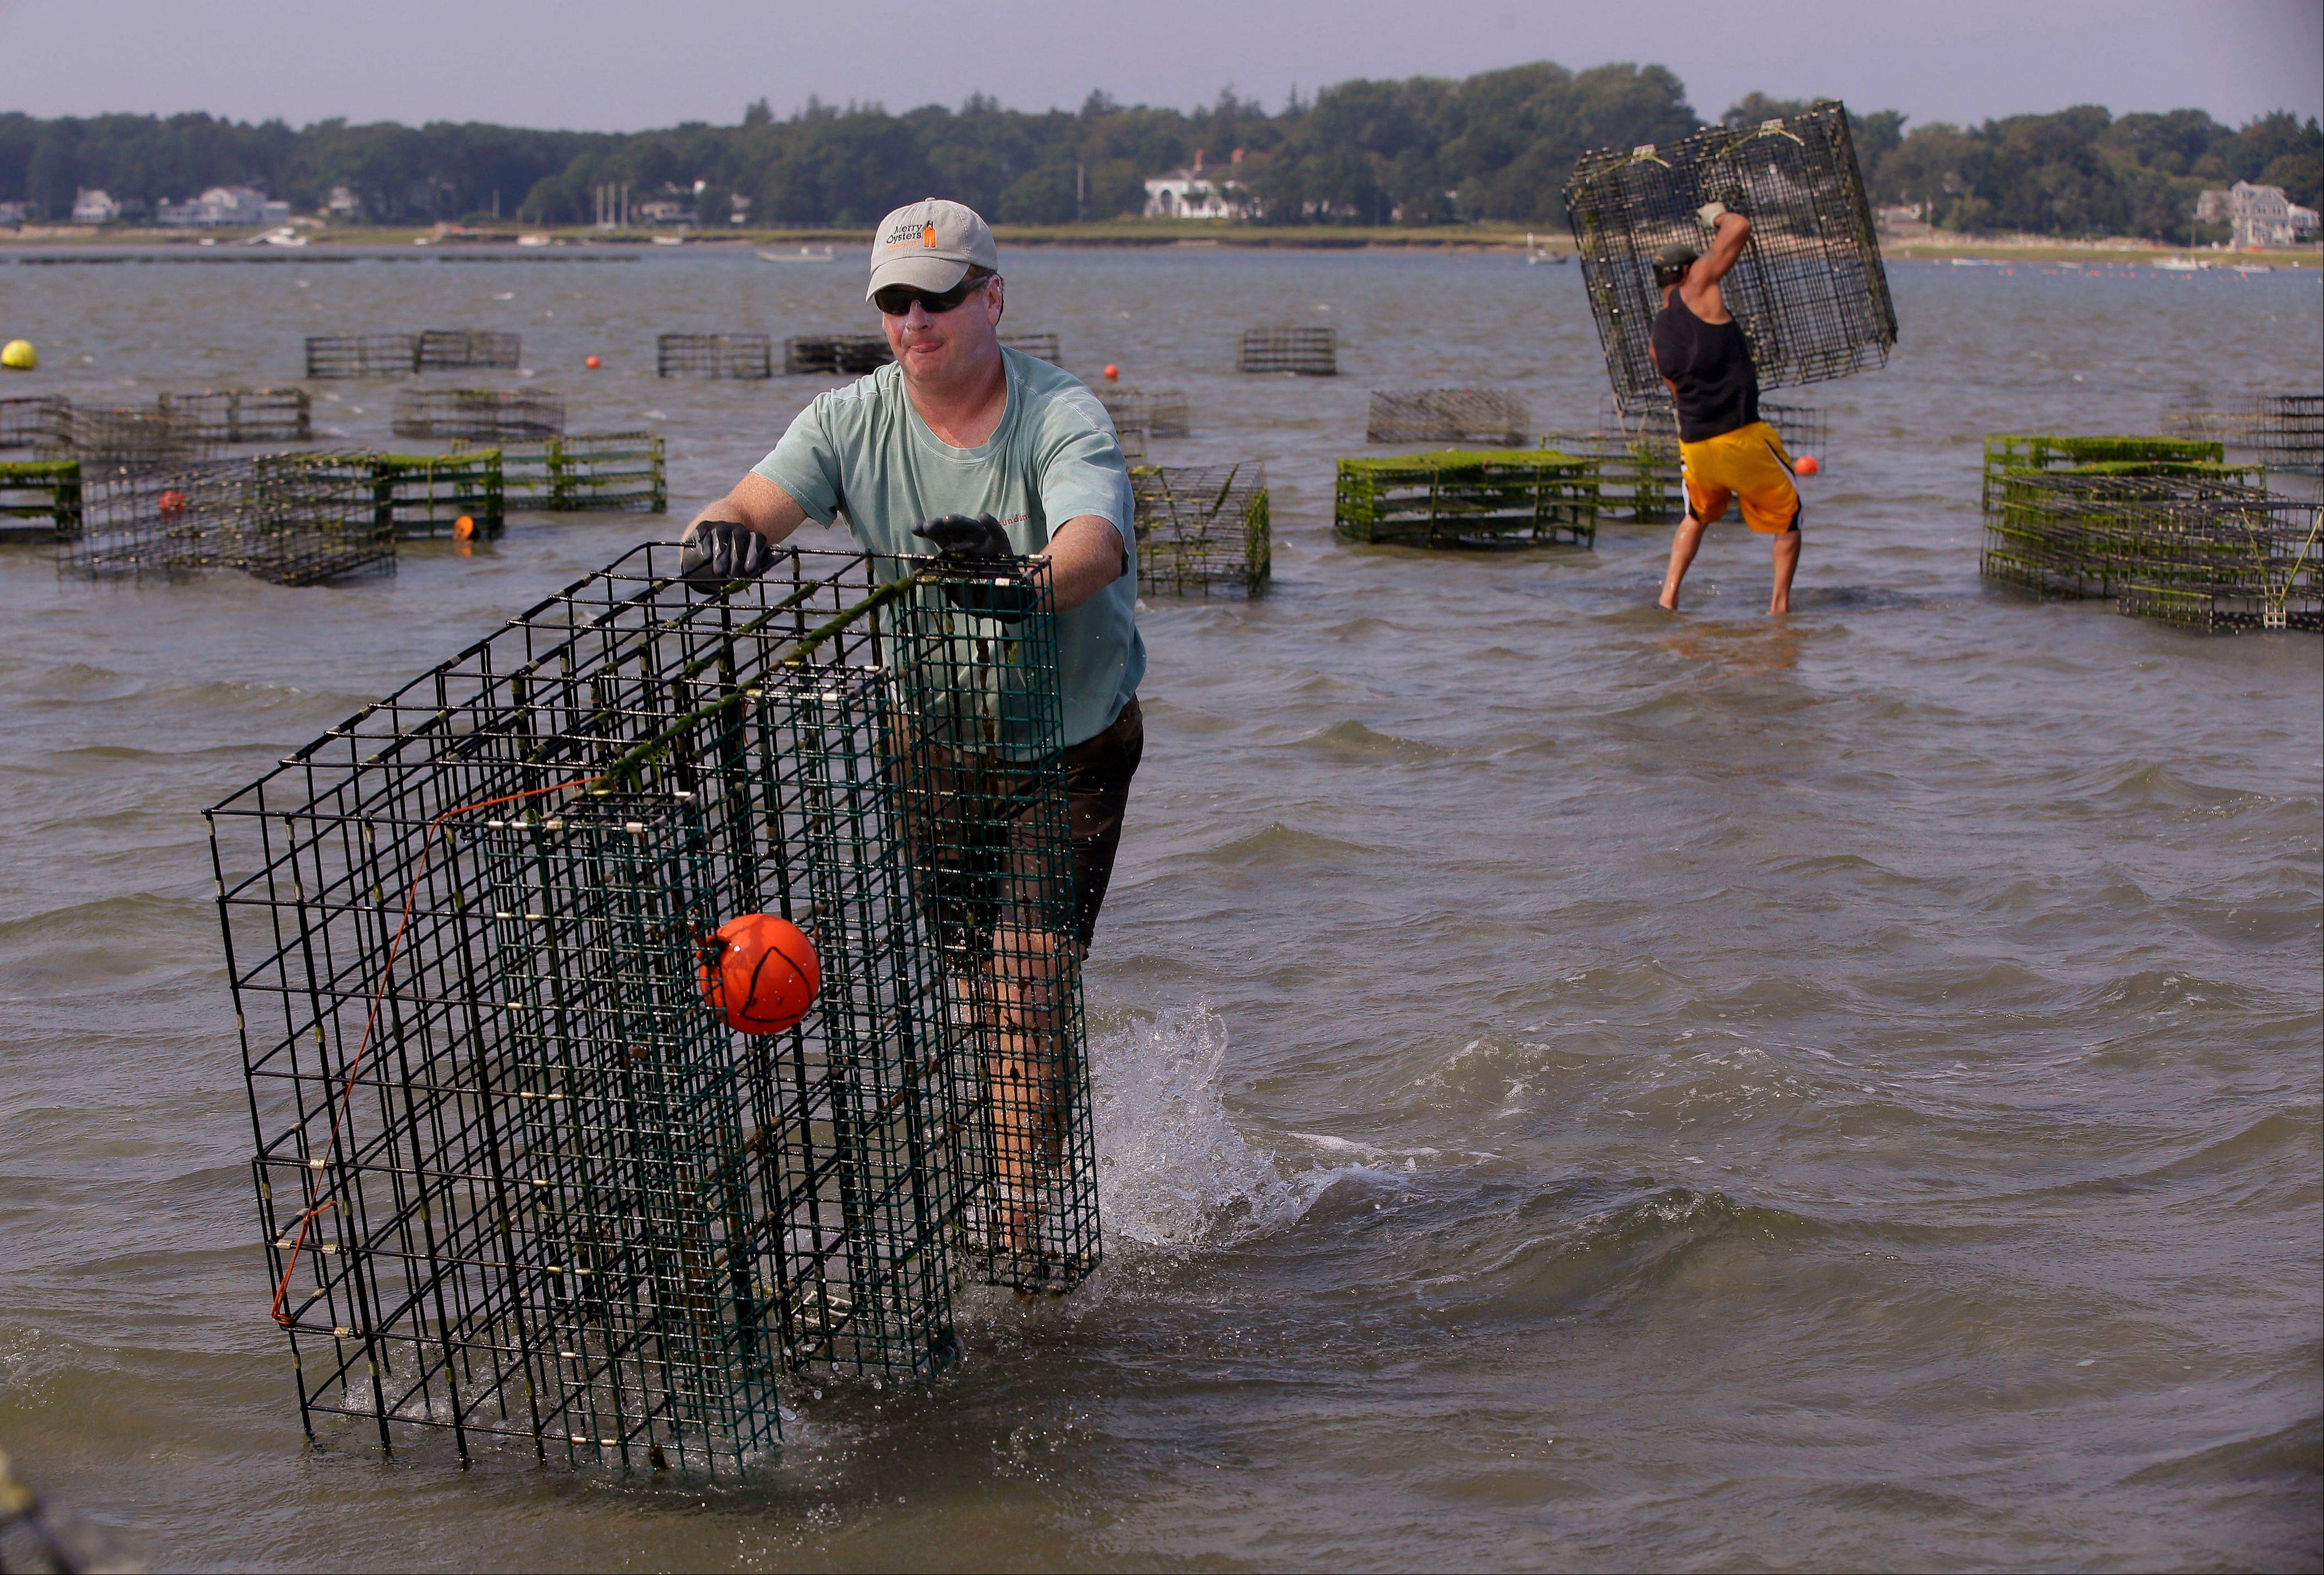 Merry, left, and Costa bring oyster cages back to their boat.